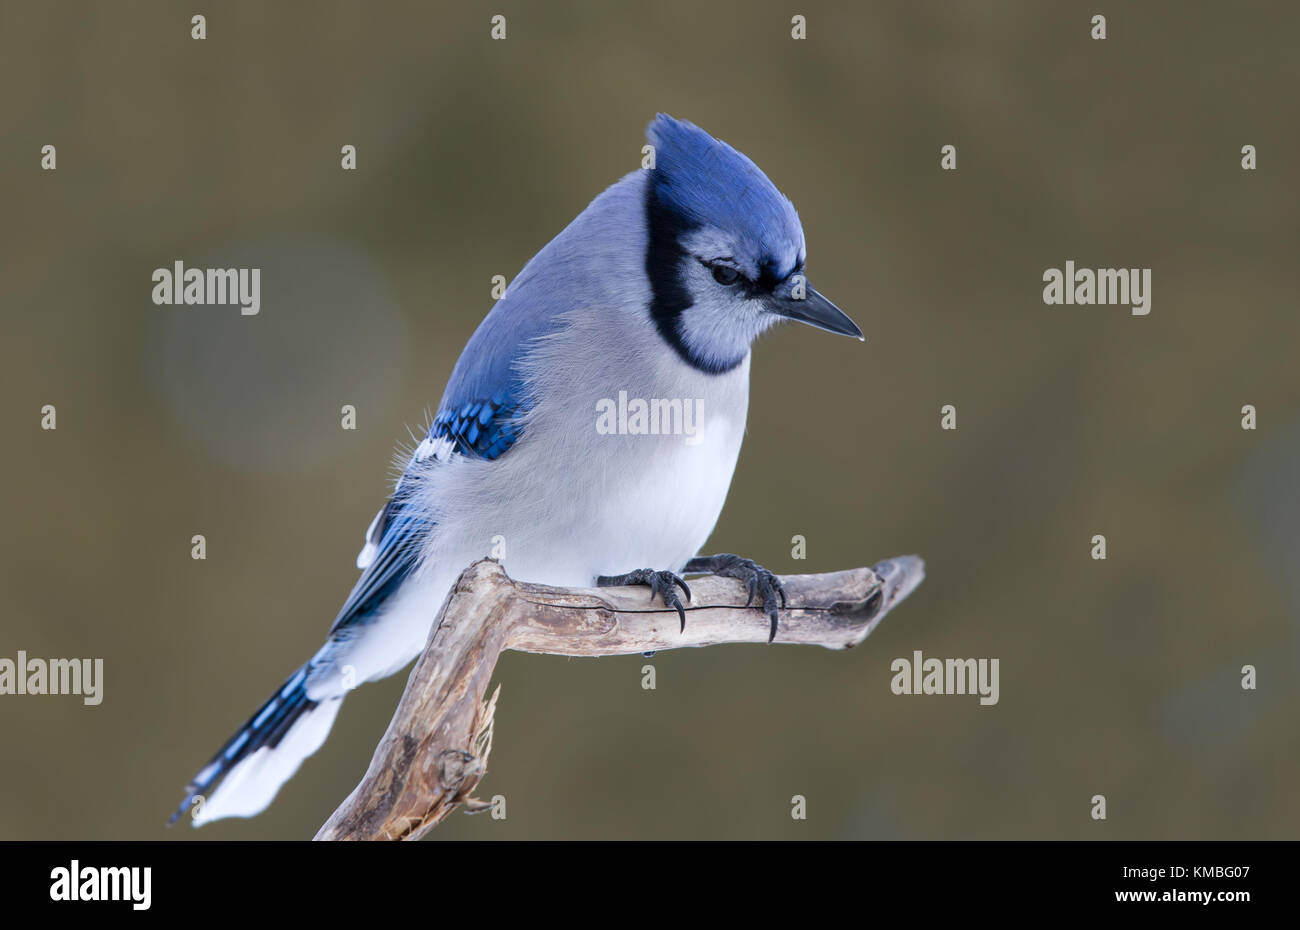 Blue Jay - Cyanocitta cristata perched on a branch in Canada Stock Photo